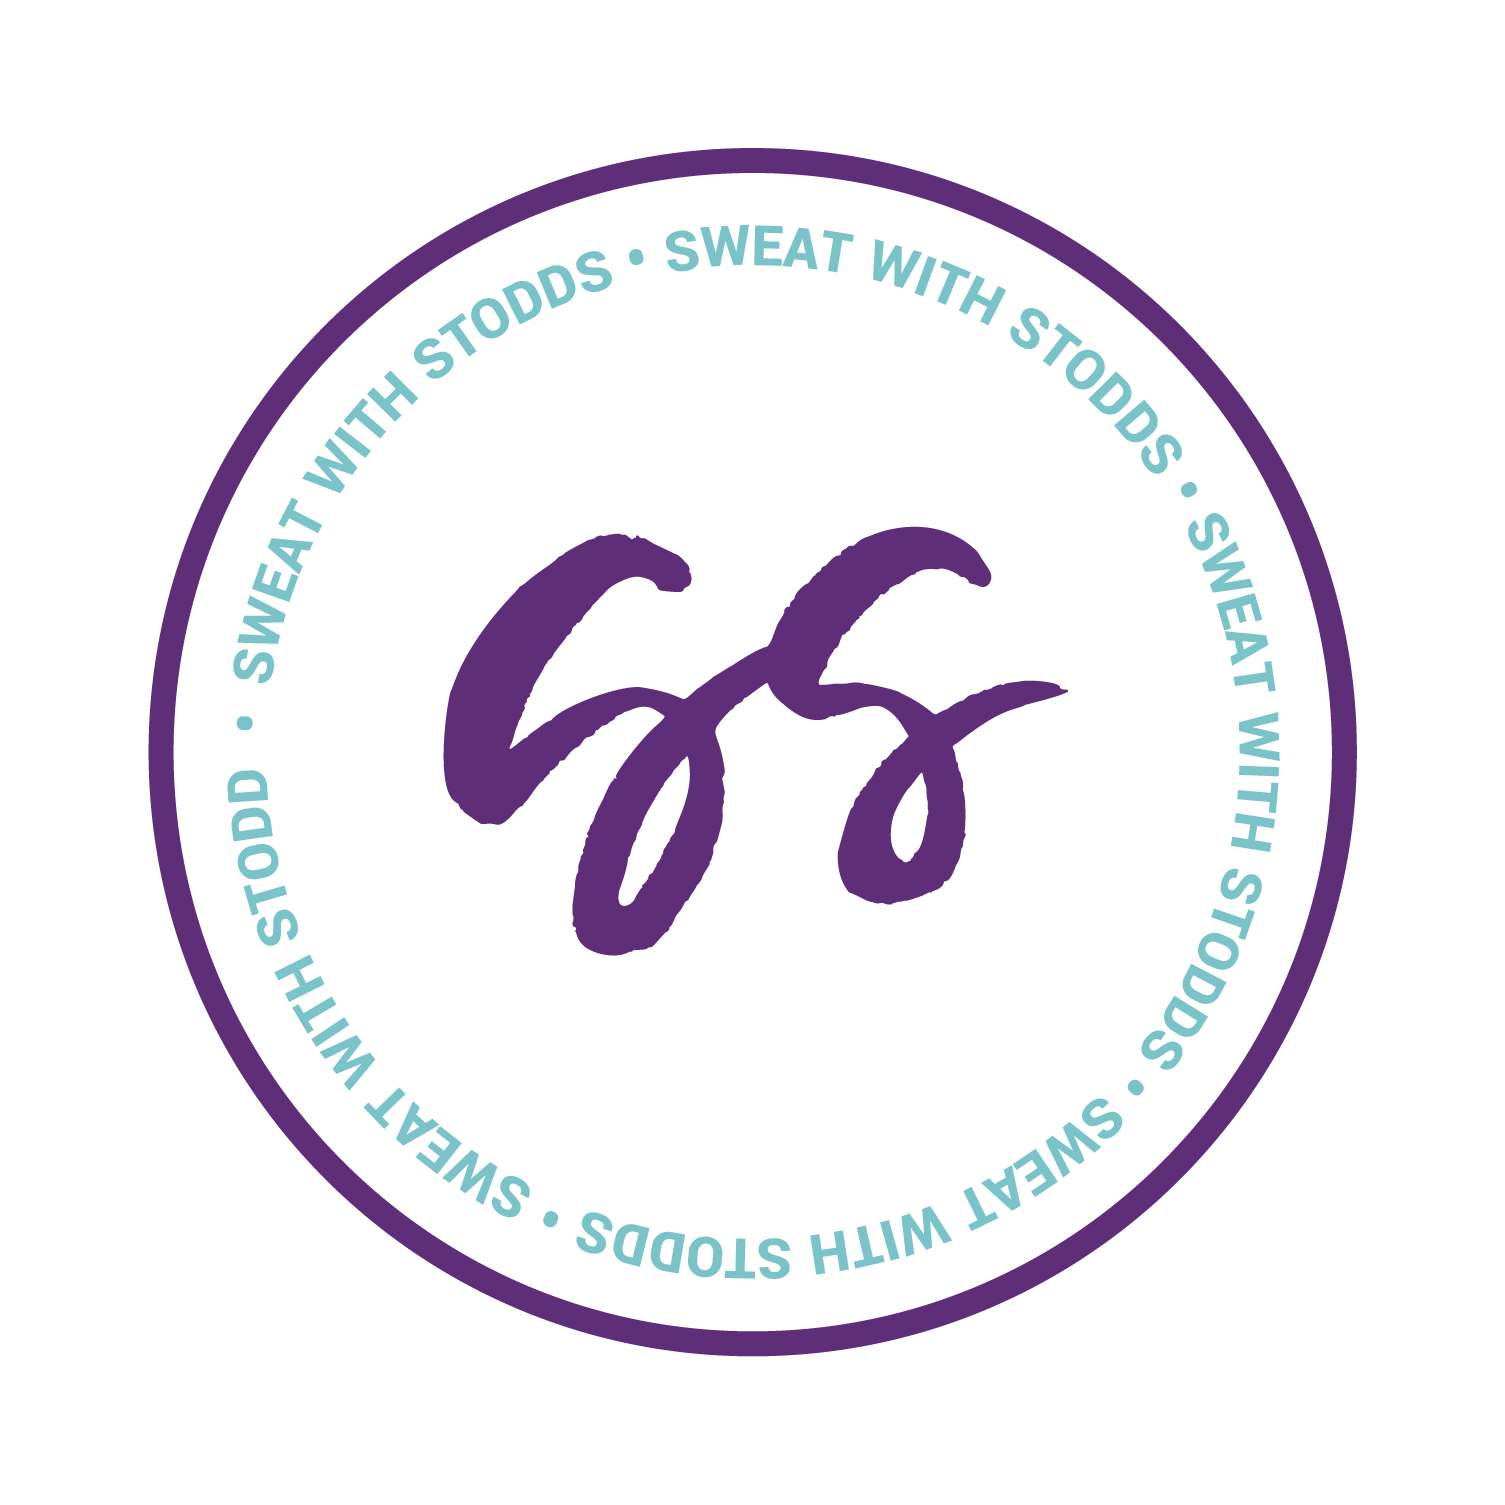 Sweat With Stodds